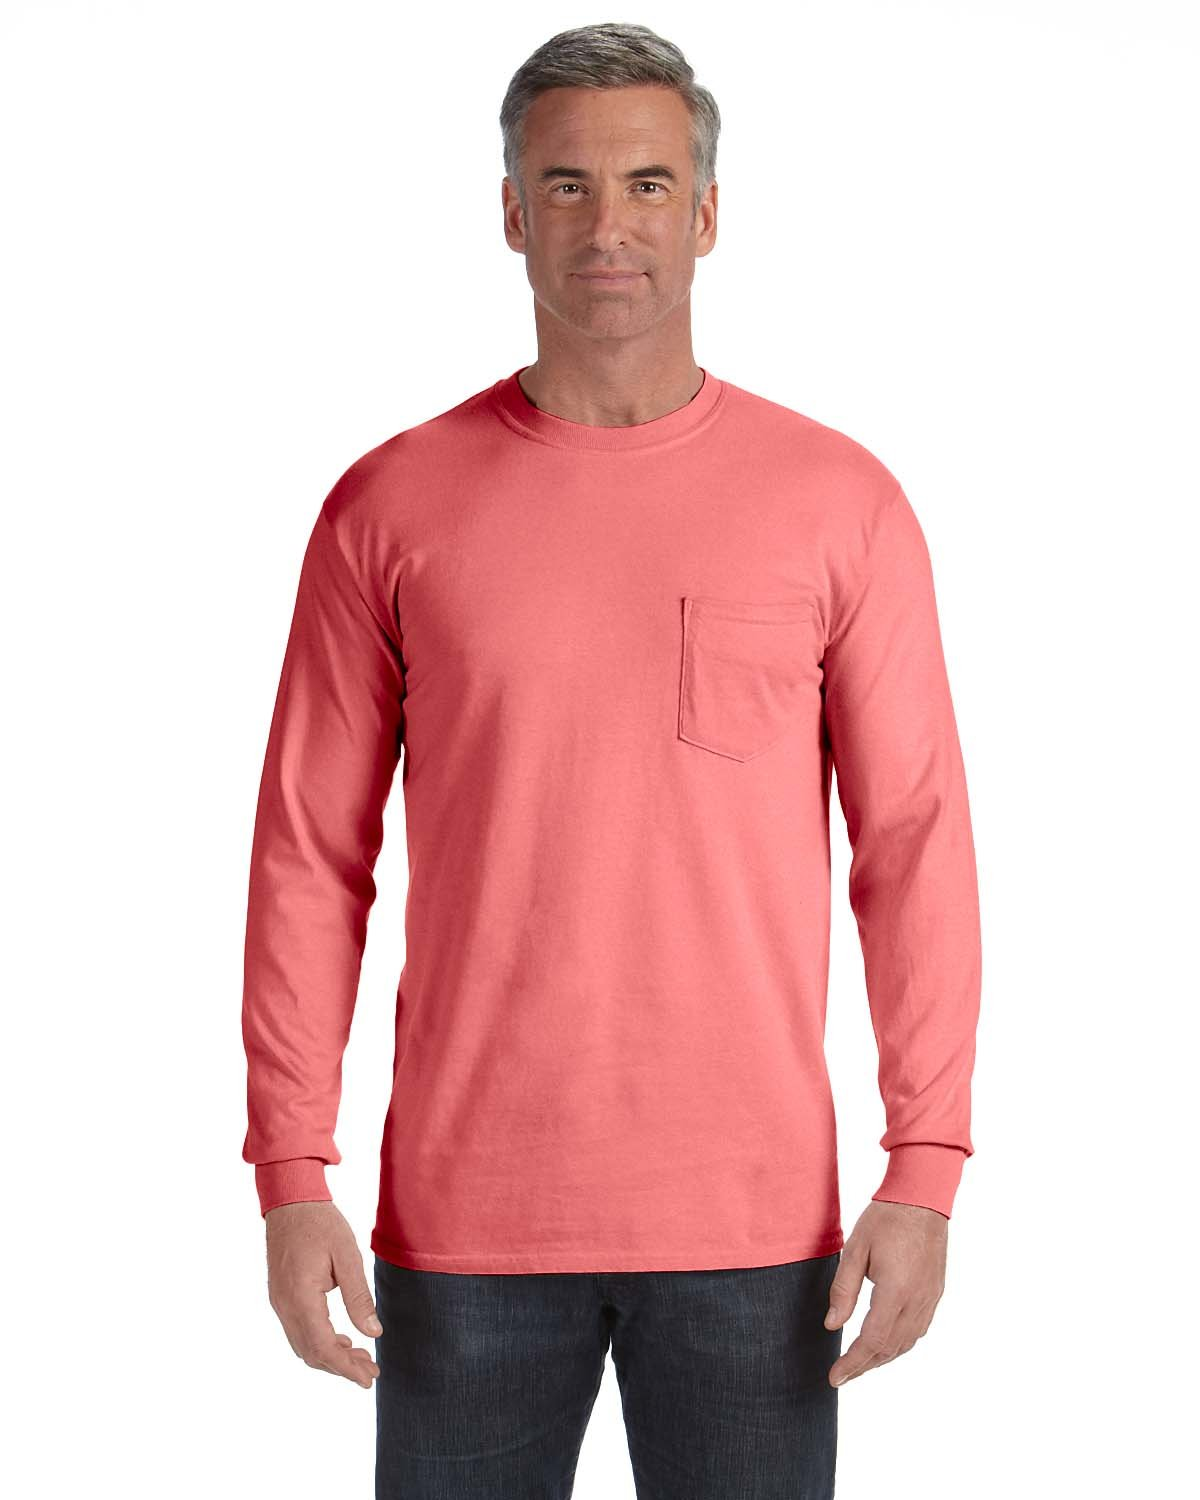 Comfort Colors Adult Heavyweight RS Long-Sleeve Pocket T-Shirt WATERMELON